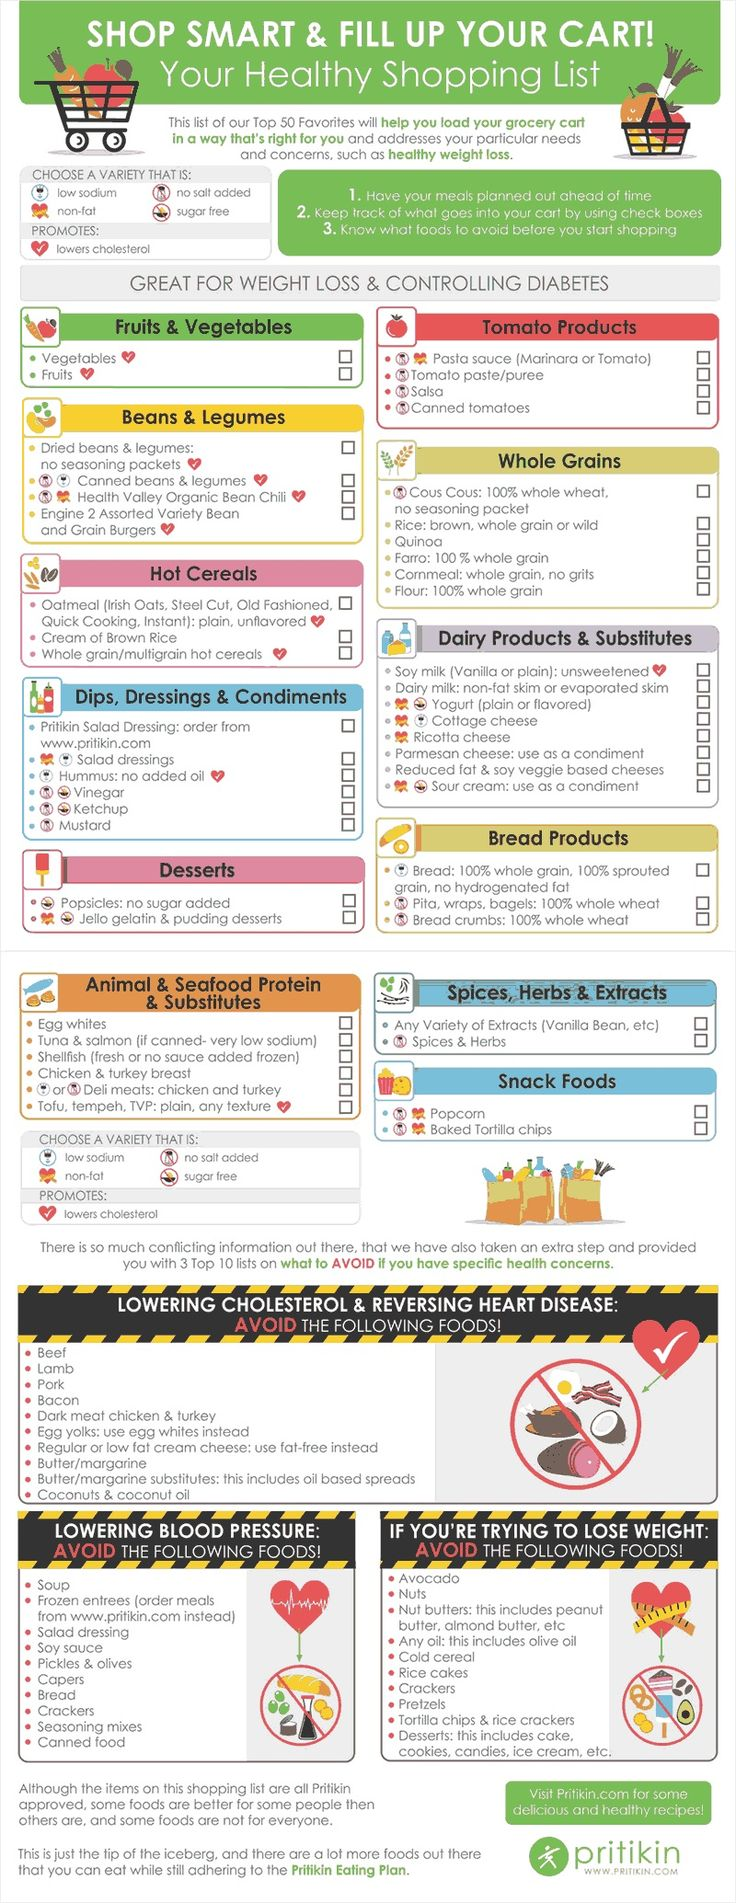 Infographic: Shop Smart & Fill Up Your Cart: Your Healthy Grocery Shopping List